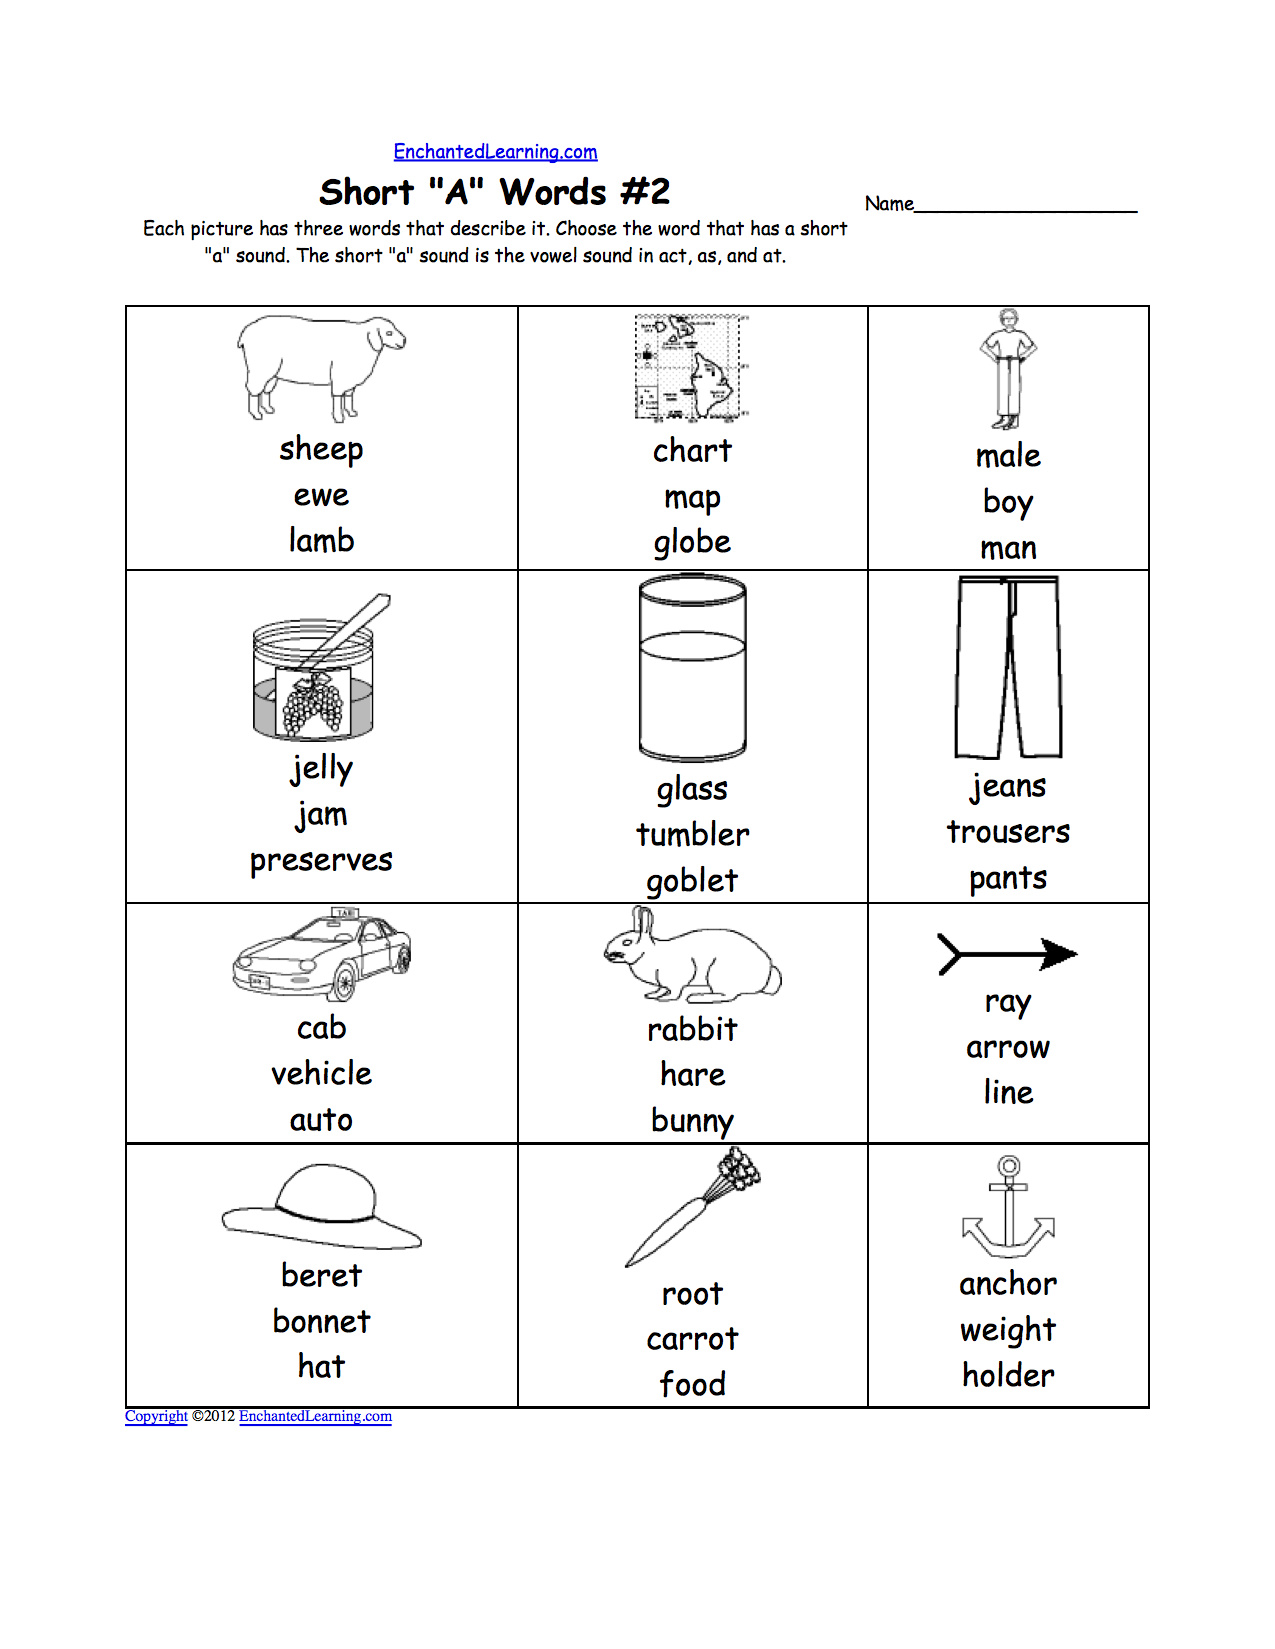 Printables Short E Worksheets For First Grade phonics worksheets multiple choice to print enchantedlearning com